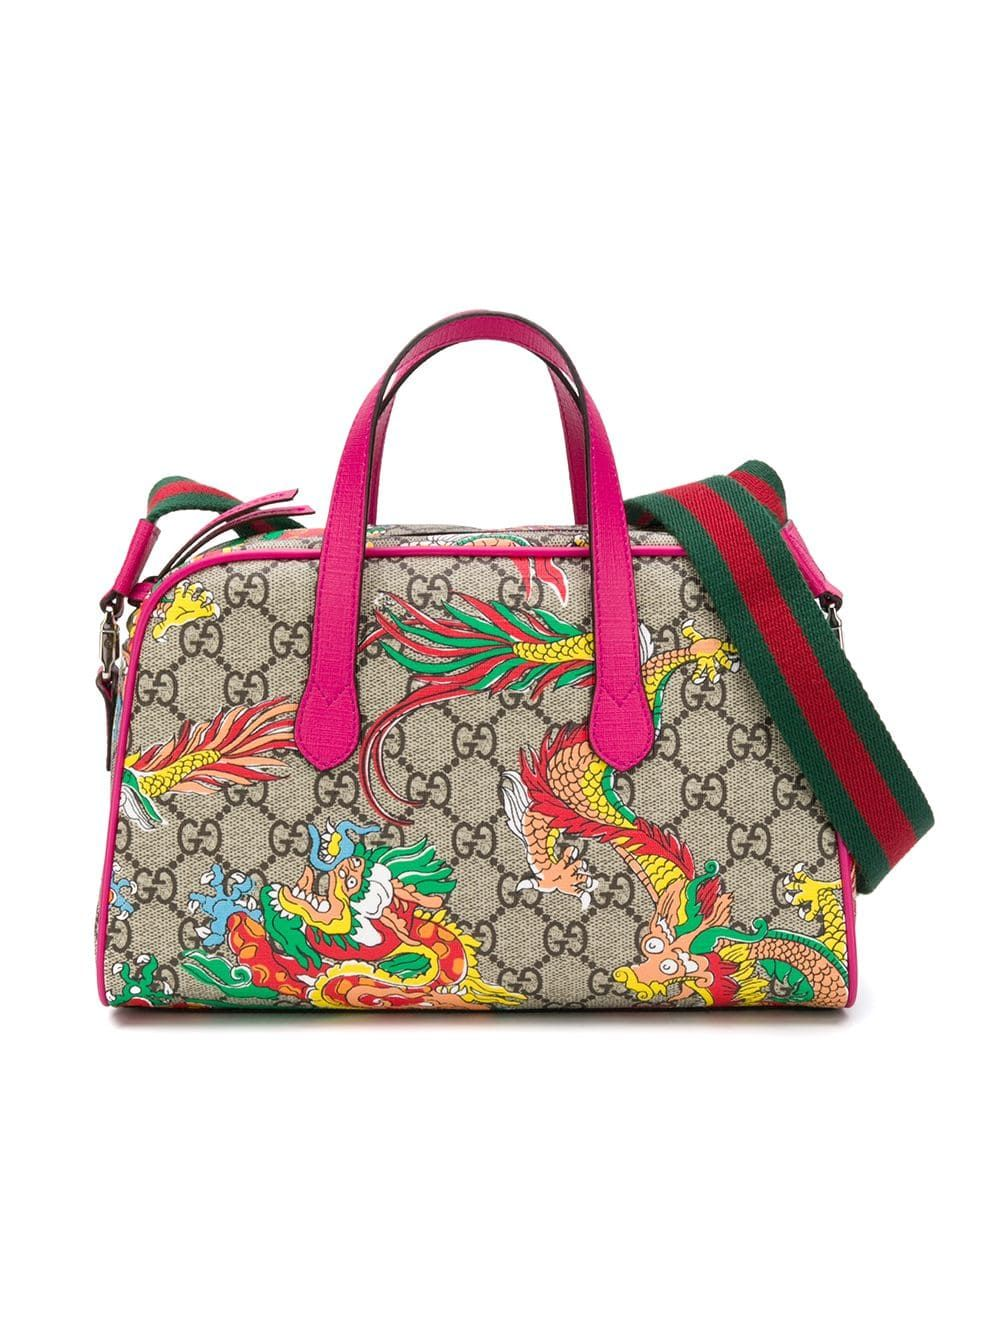 c93f109a2 gucci #bags #gg #bowling #kids #bag #dragon #print #style #fashion ...